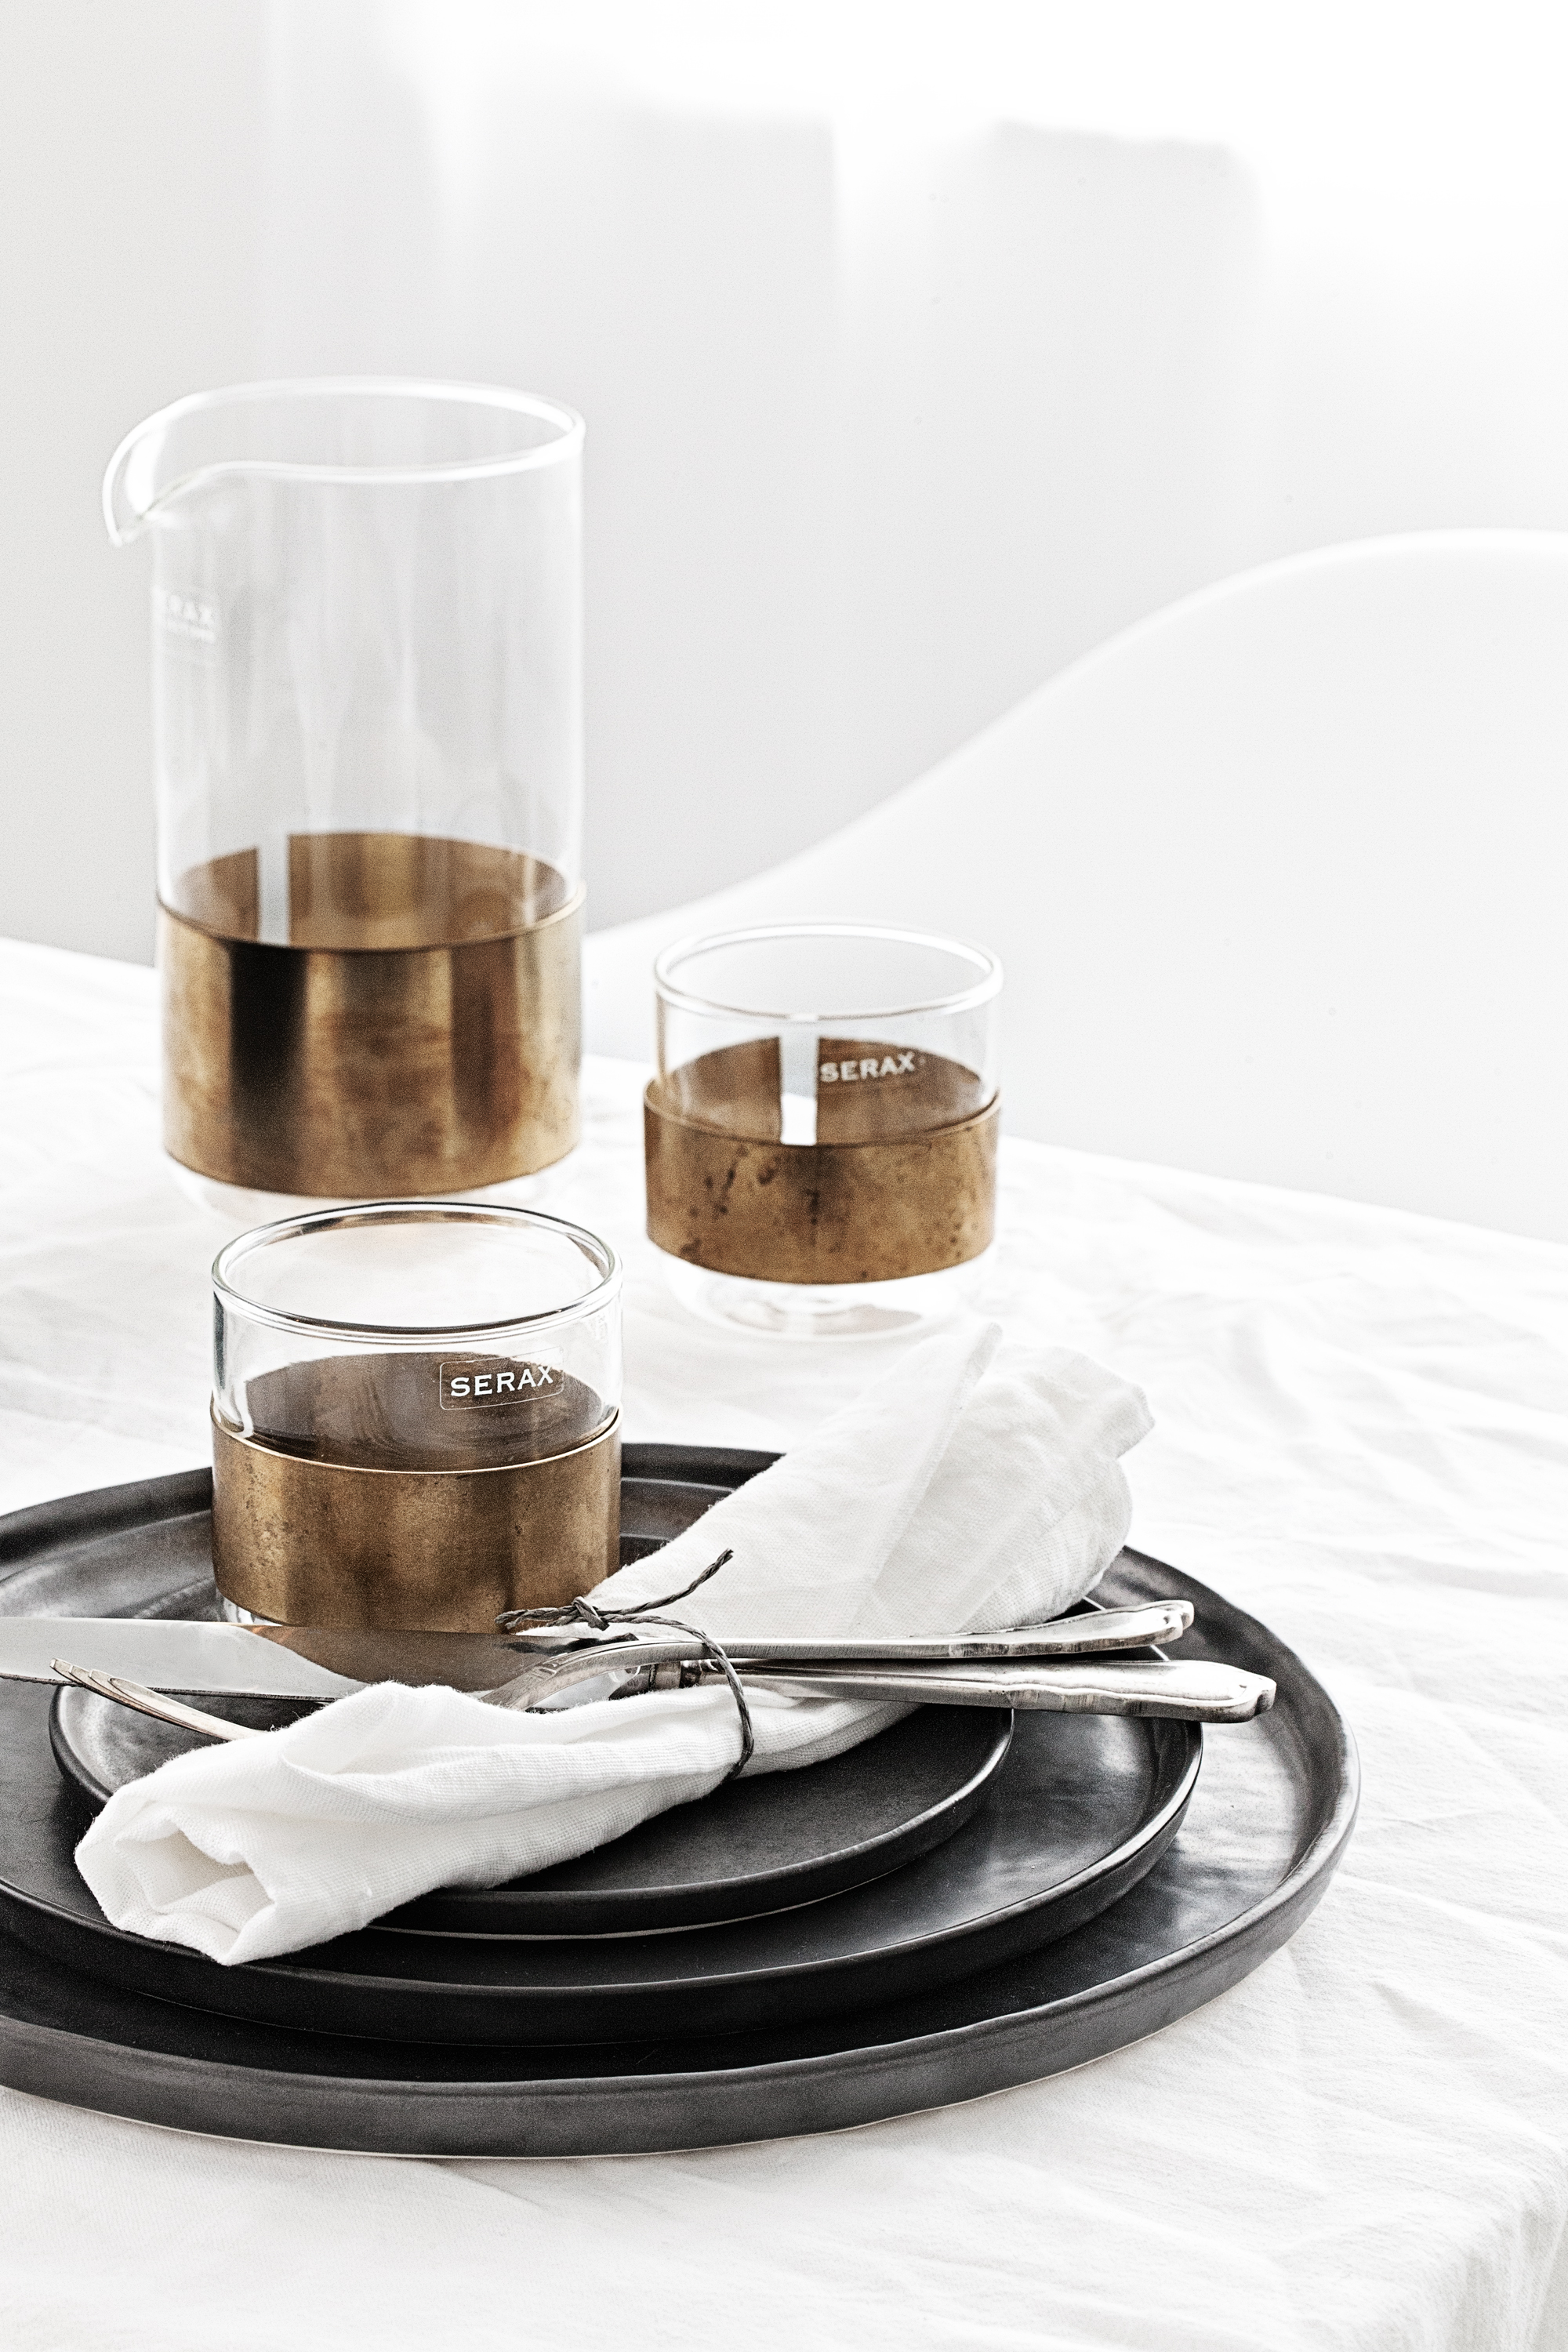 Black Ceramics Tableware   by  Pascale Naessens  |   Copper Glass Carafe Set   by  Niels Datema  | All from   Serax Belgium